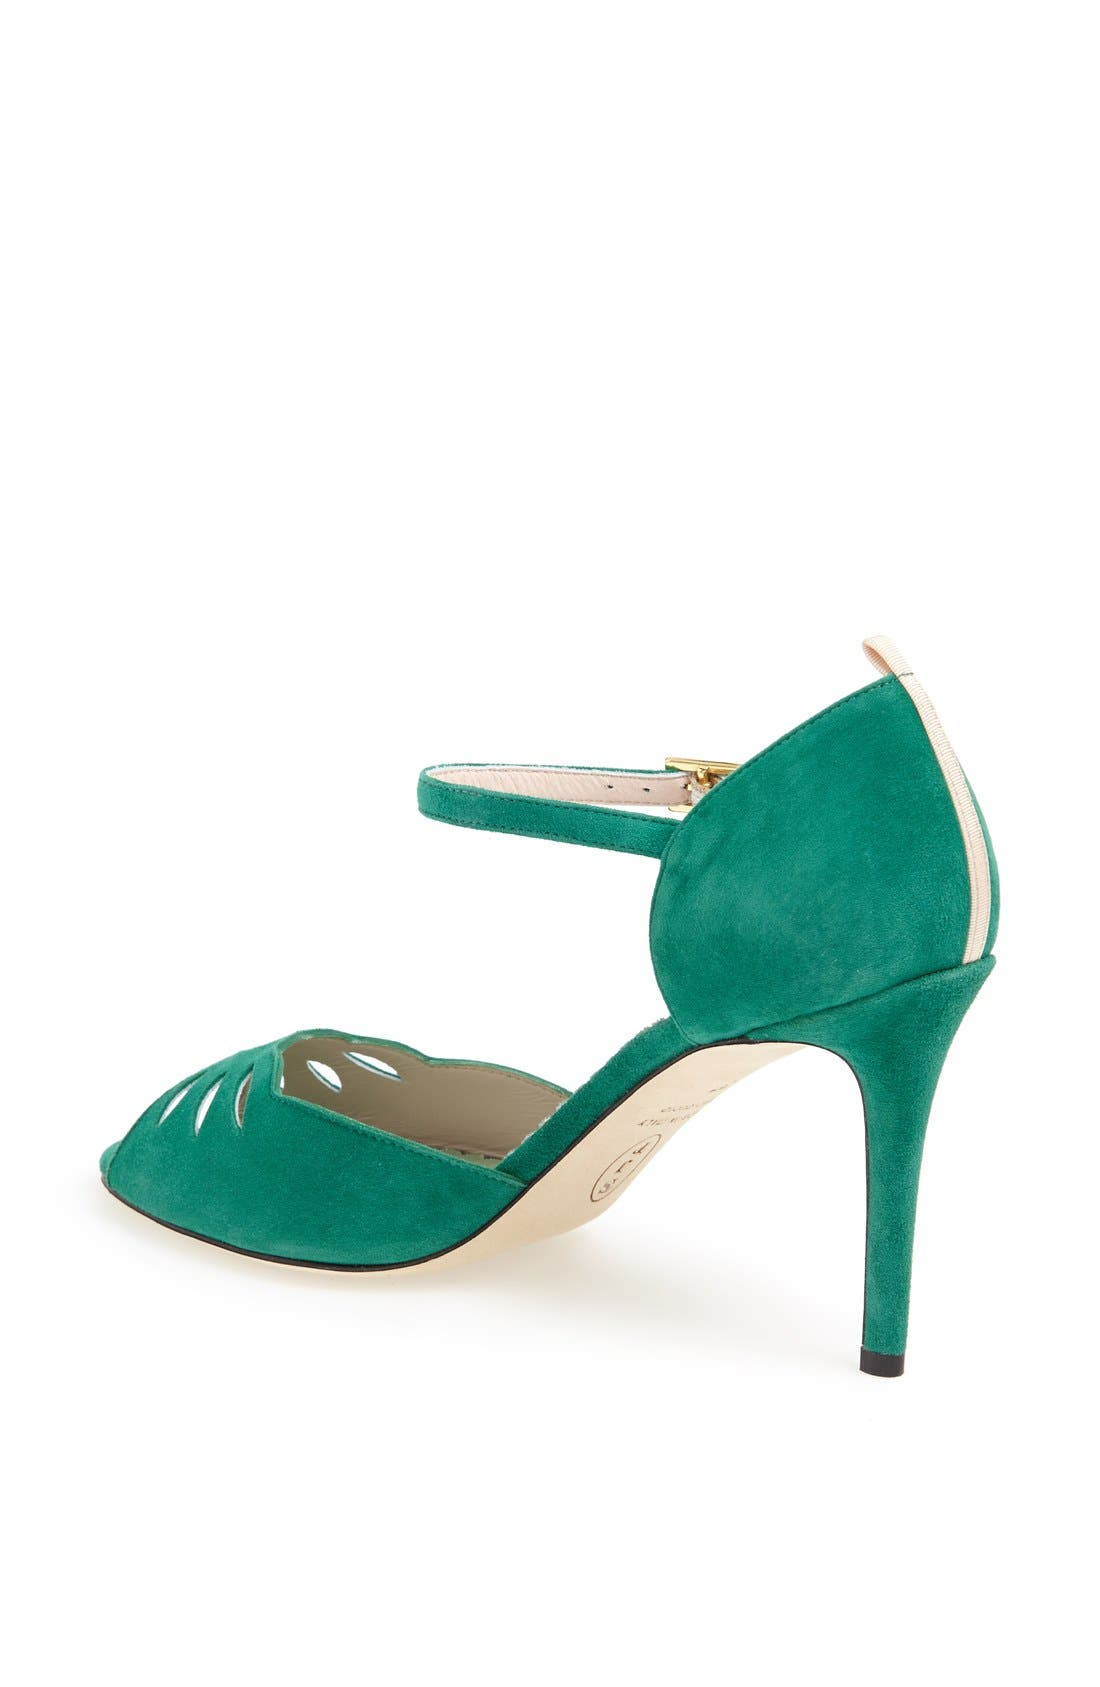 Alternate Image 3  - SJP 'Ina' Pump (Nordstrom Exclusive)